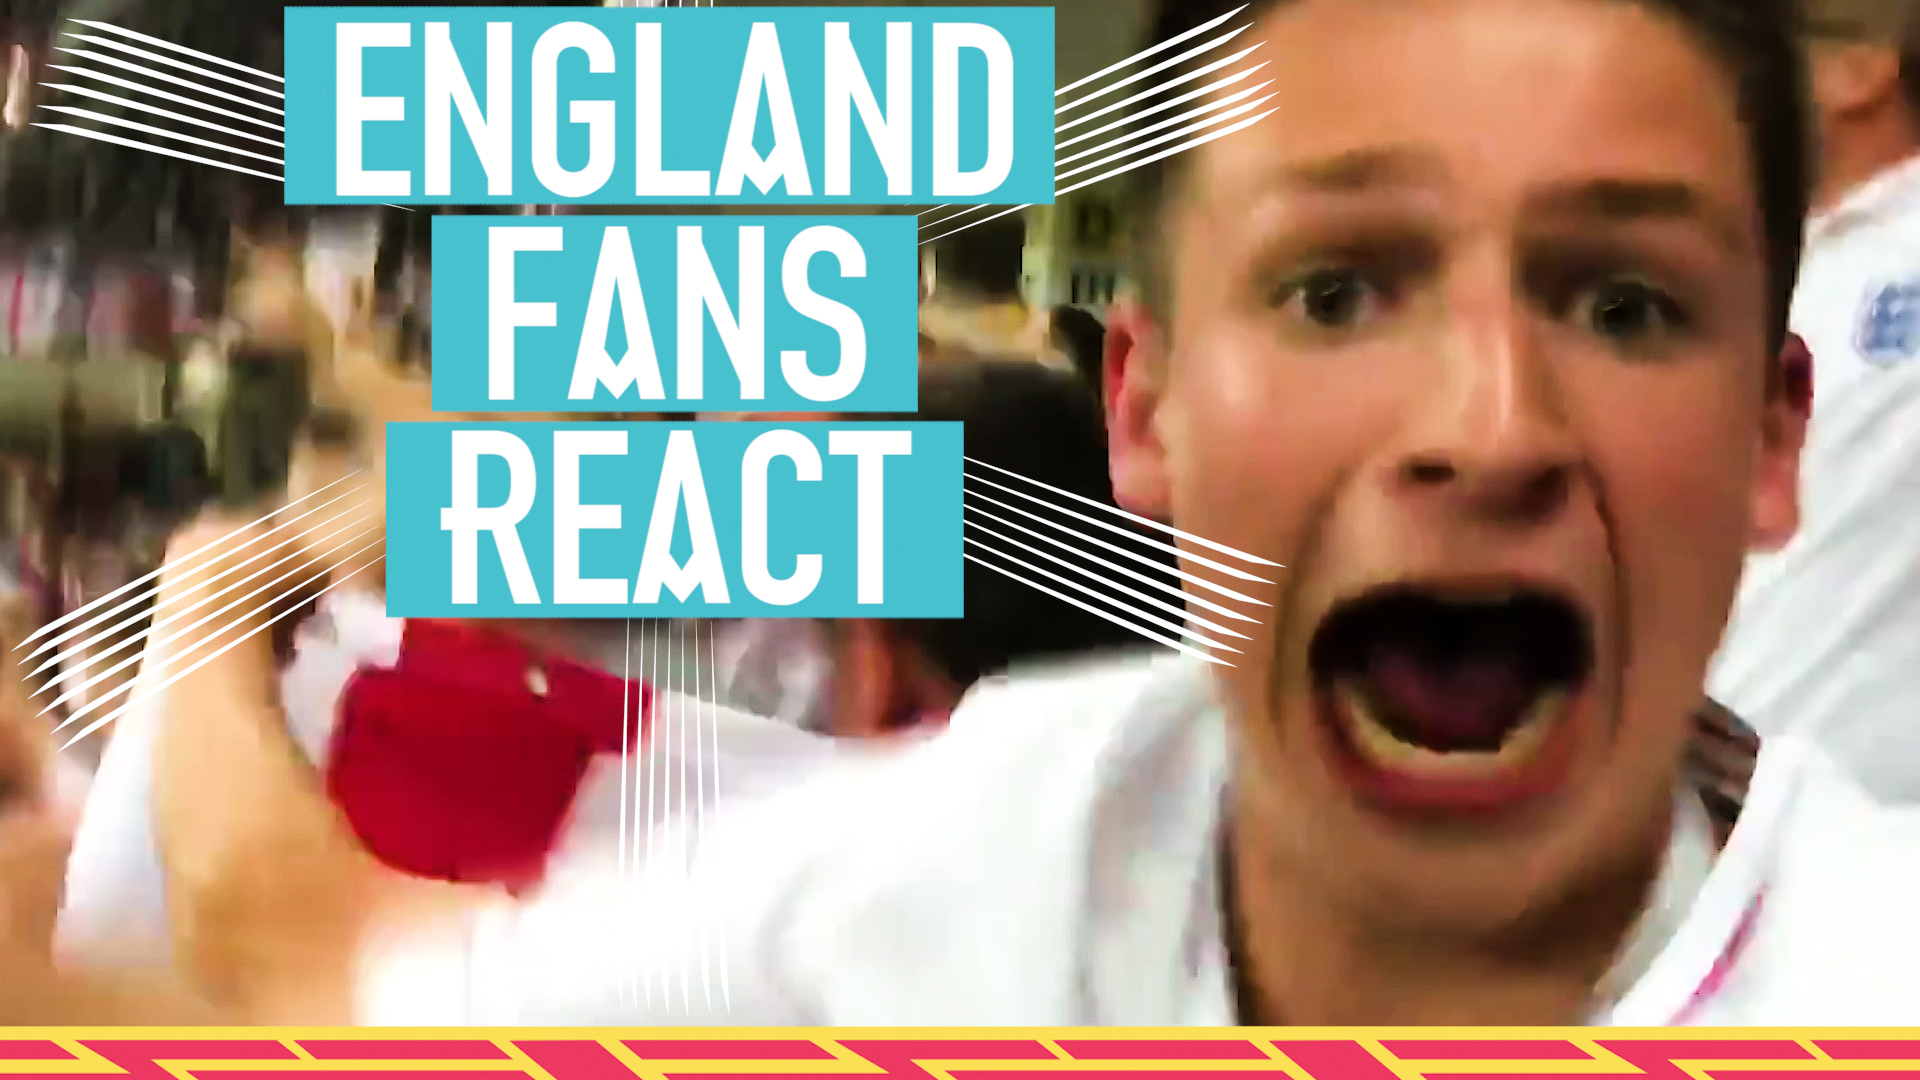 Watch the reaction of England fans to Harry Kane's last-gasp winner against Tunisia.